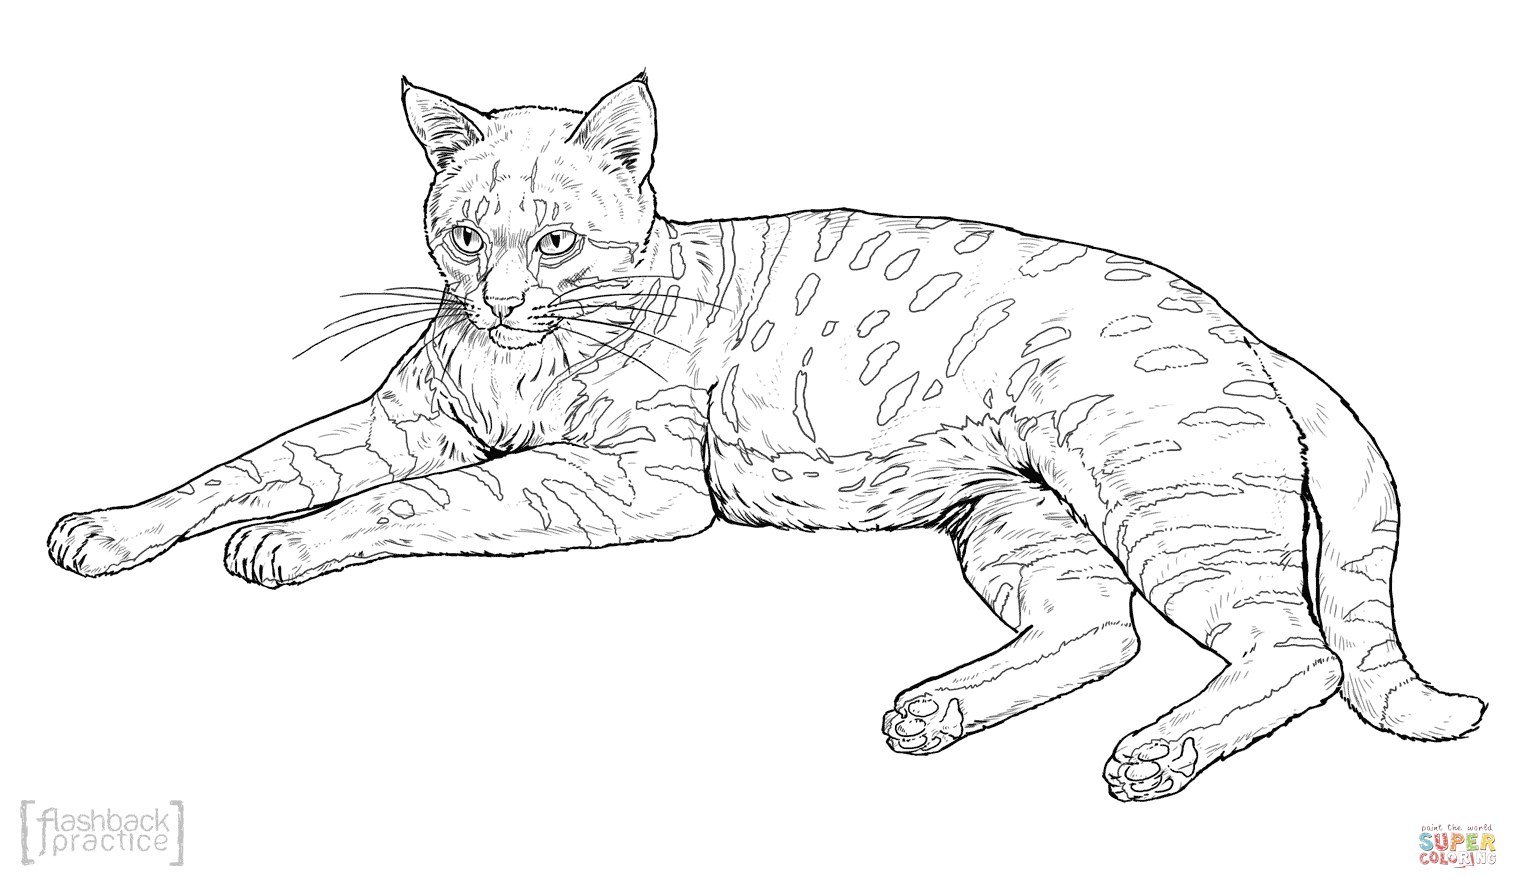 black-footed-cat-coloring-page.png (1518×889) | ART | Pinterest